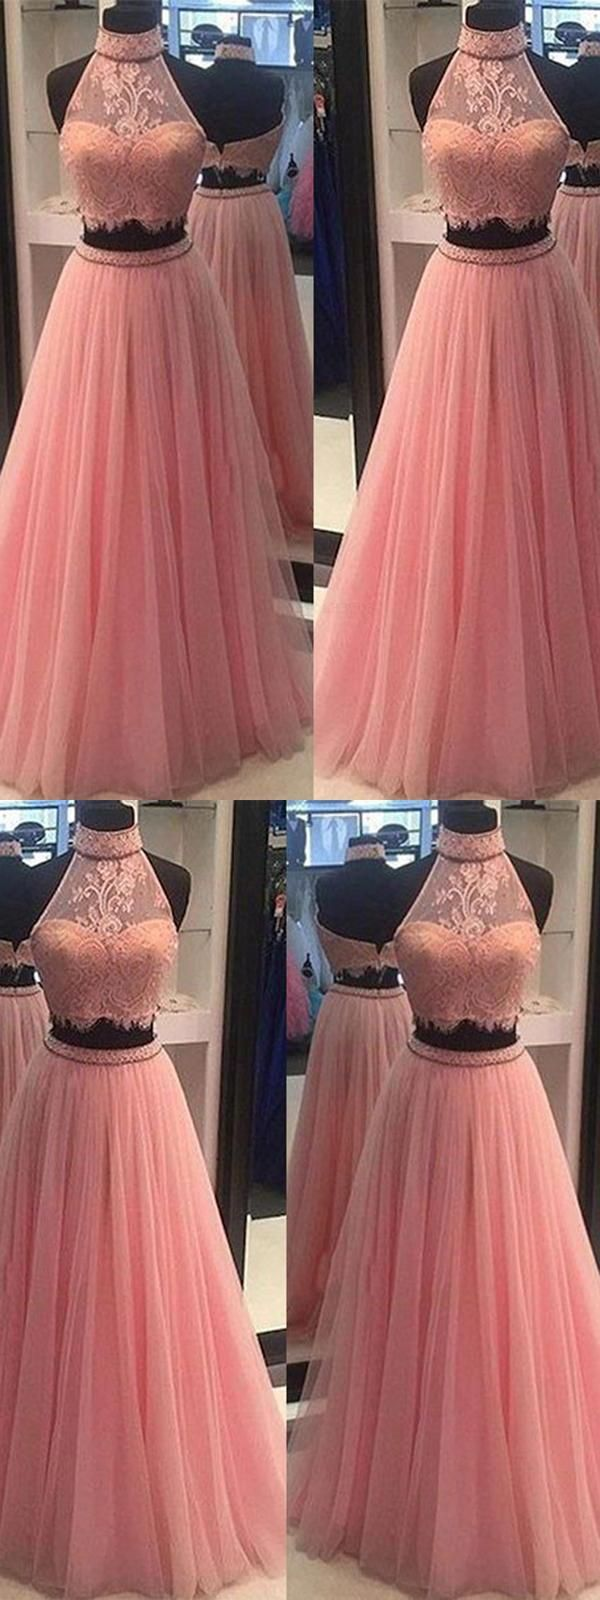 Outlet engrossing long prom dresses prom dresses for cheap prom